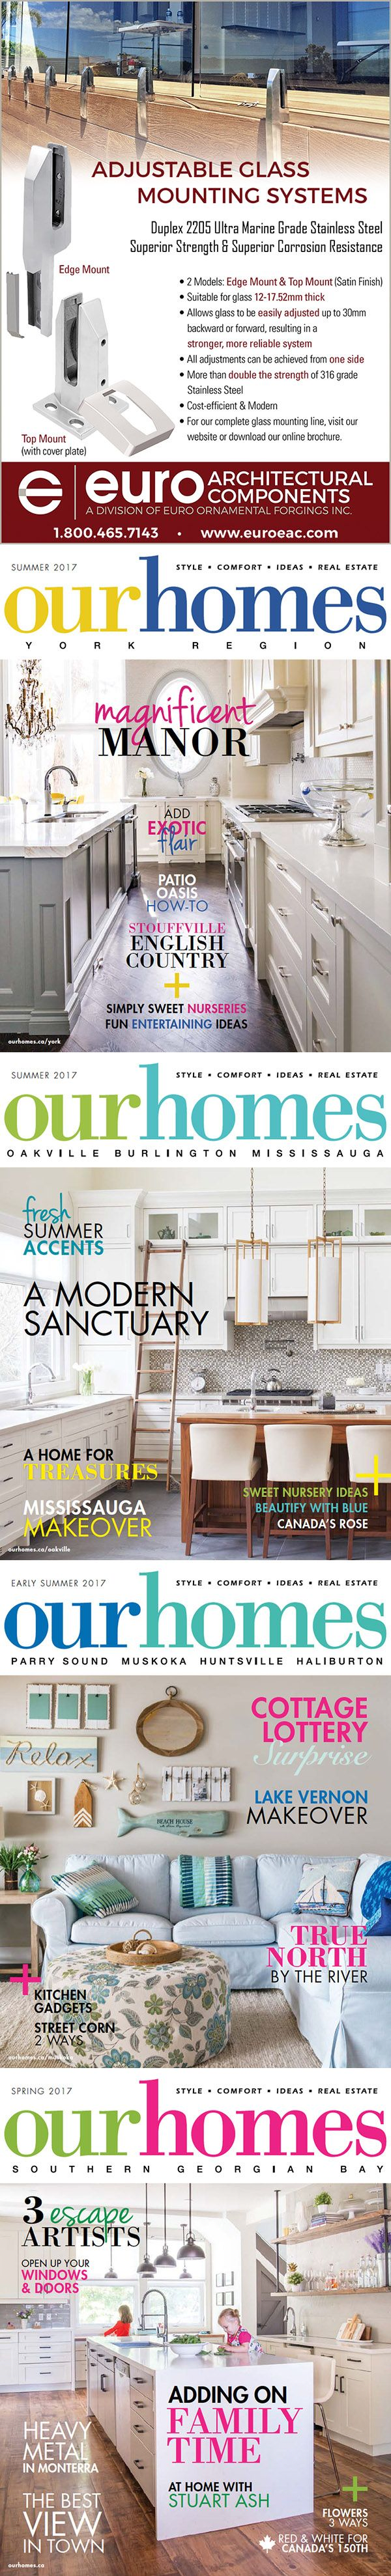 The #Summer 2017 issue of @ourhomesmagazine is out! Download the PDF or browse the digital flipbook for interesting reads and #design#inspirations! Check out our ad in these regional editions: #York (p. 69) #Oakville / #Burlington / #Mississauga (p. 59) #Muskoka (p. 53) #SouthGeorgianBay #Spring issue (p. 35) http://www.ourhomes.ca/  As featured in our ad, we are excited to showcase our NEW line of #adjustable #glass mounting systems! Besides the new #TopMount #Spigot, we now offer an…